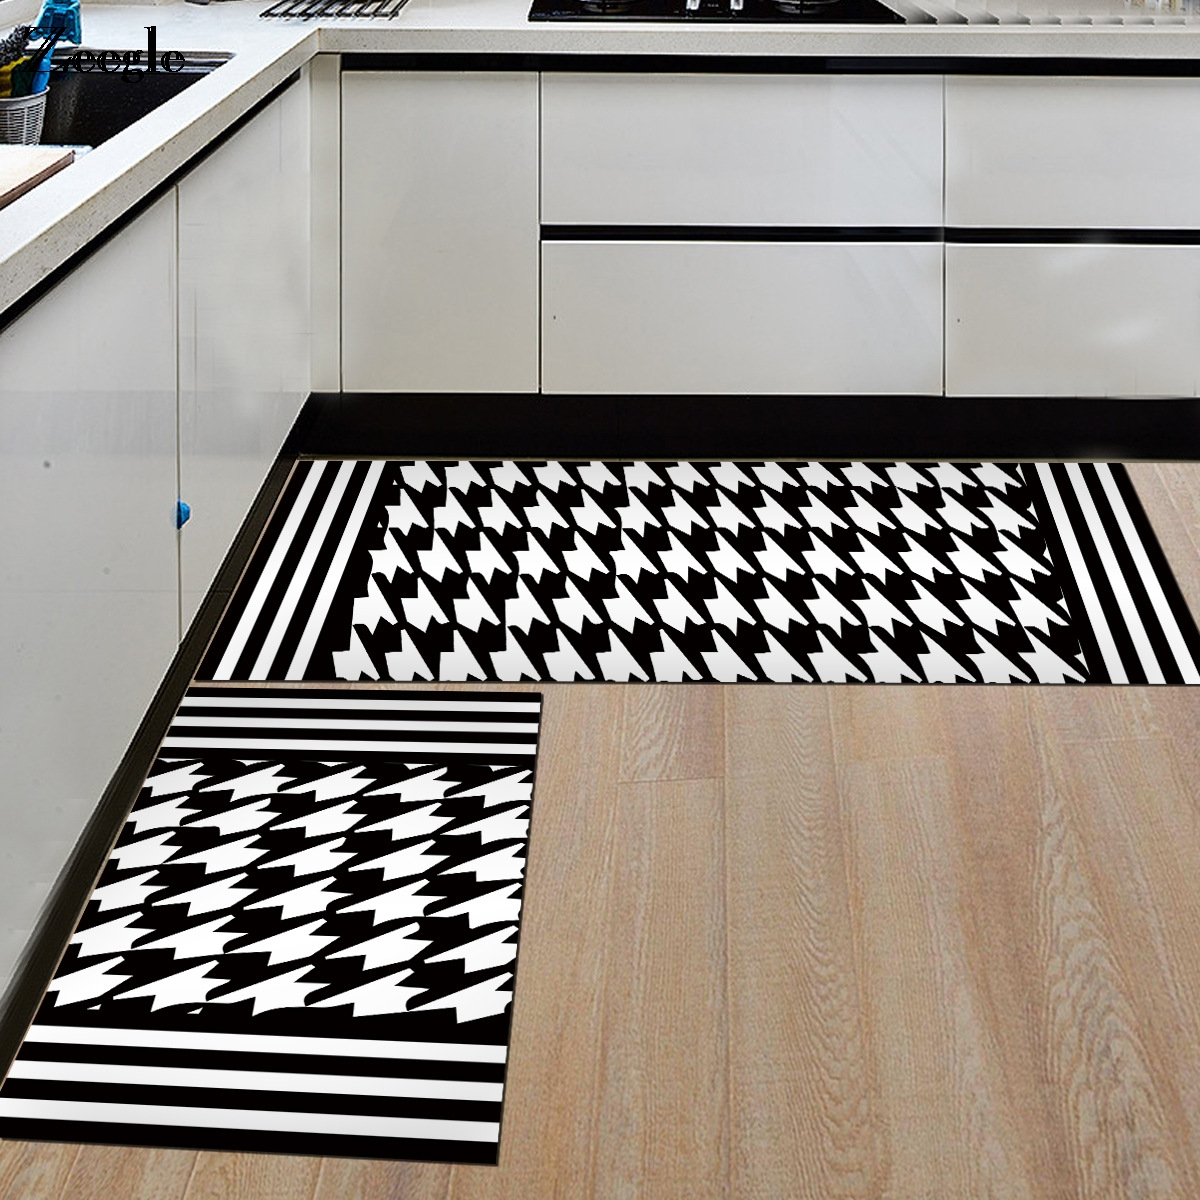 White Kitchen Floor Mats: Aliexpress.com : Buy Zeegle Floor Mat Black And White Door